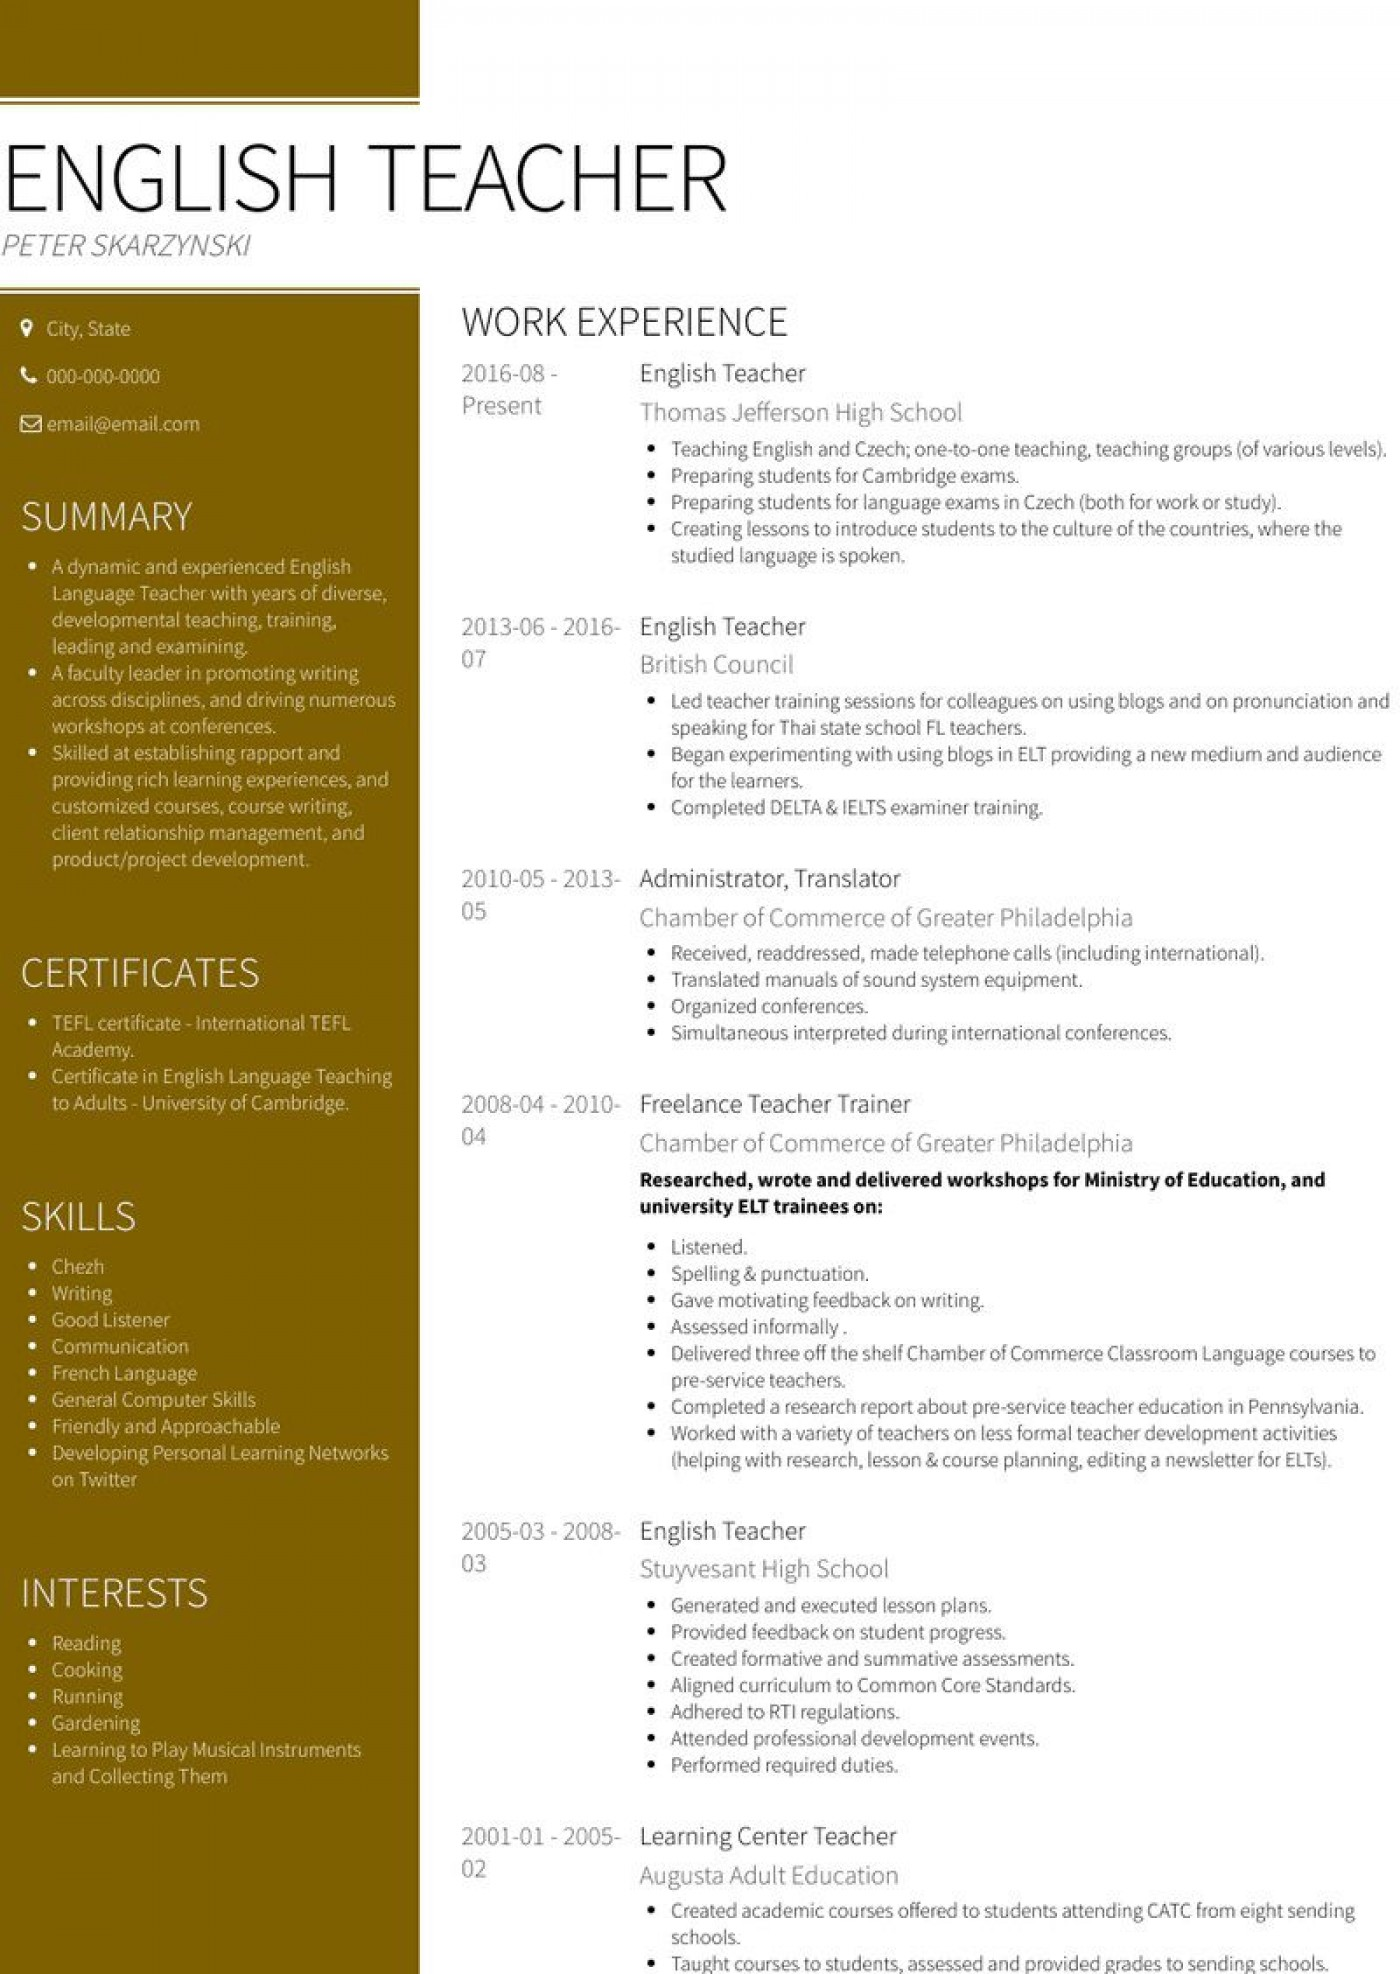 007 Archaicawful Resume Template For Teacher High Resolution  Free Download Australia Microsoft Word 20071400